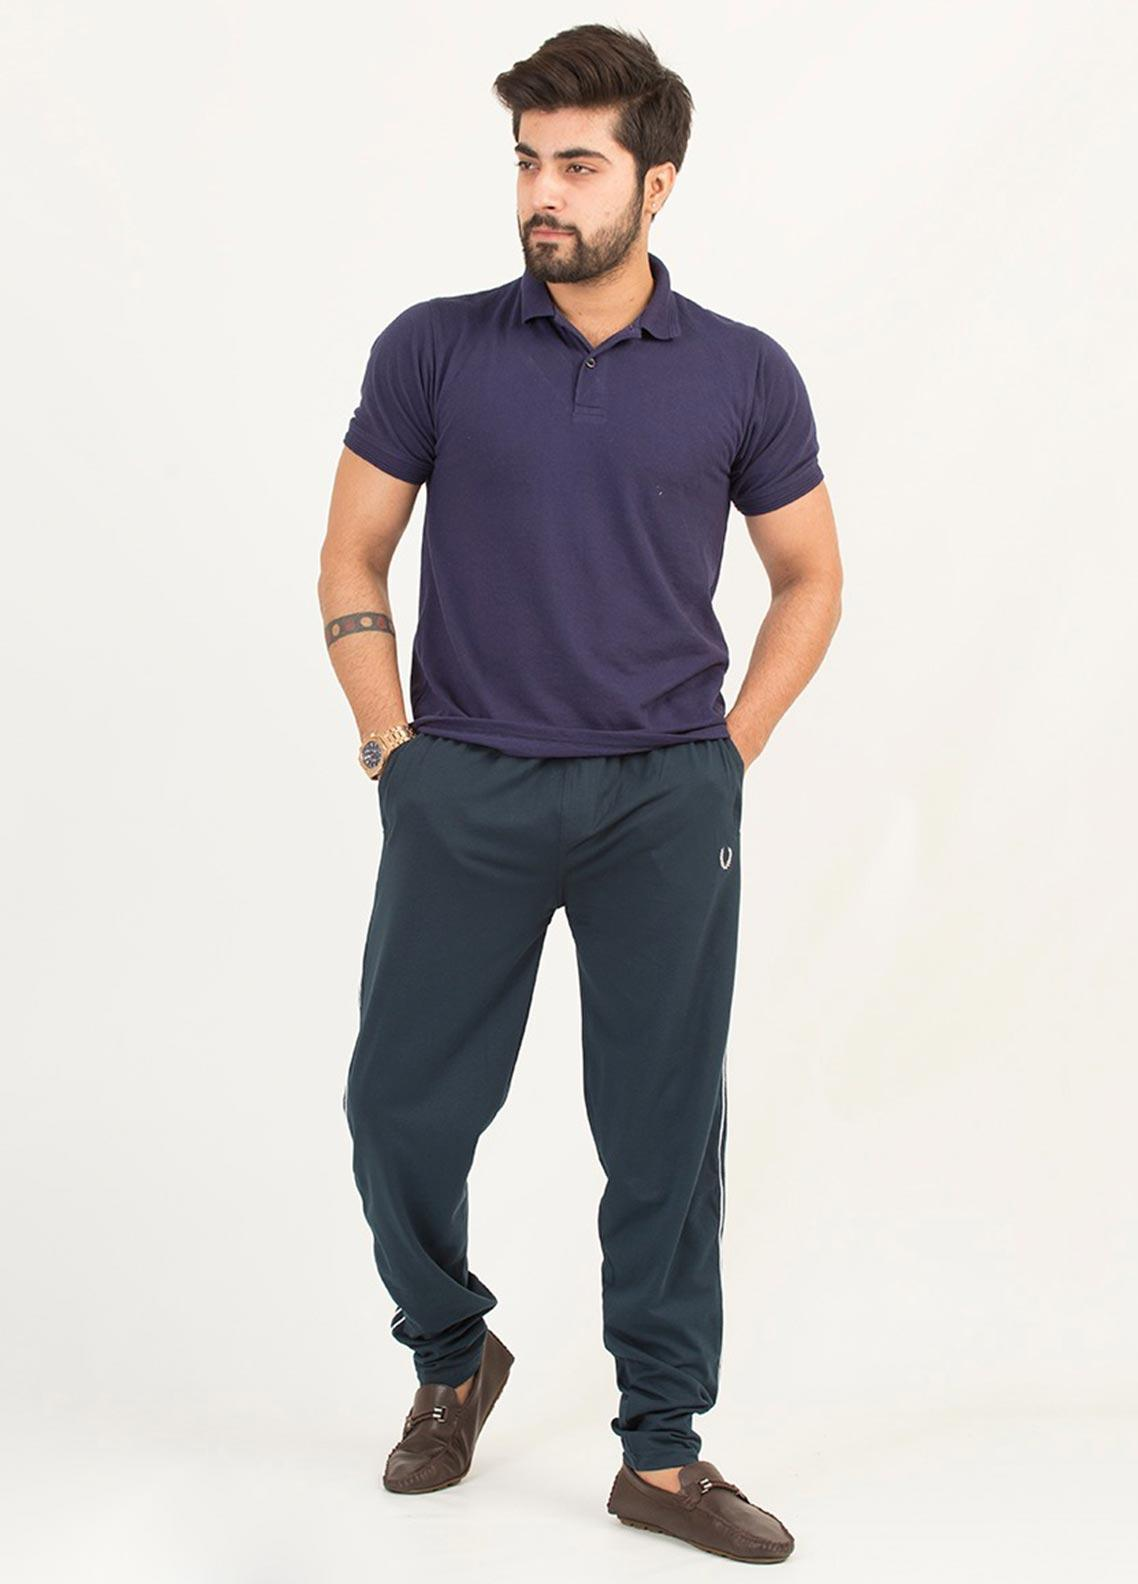 UC Clothing Lycra Casual Men Trousers - 04 Ink